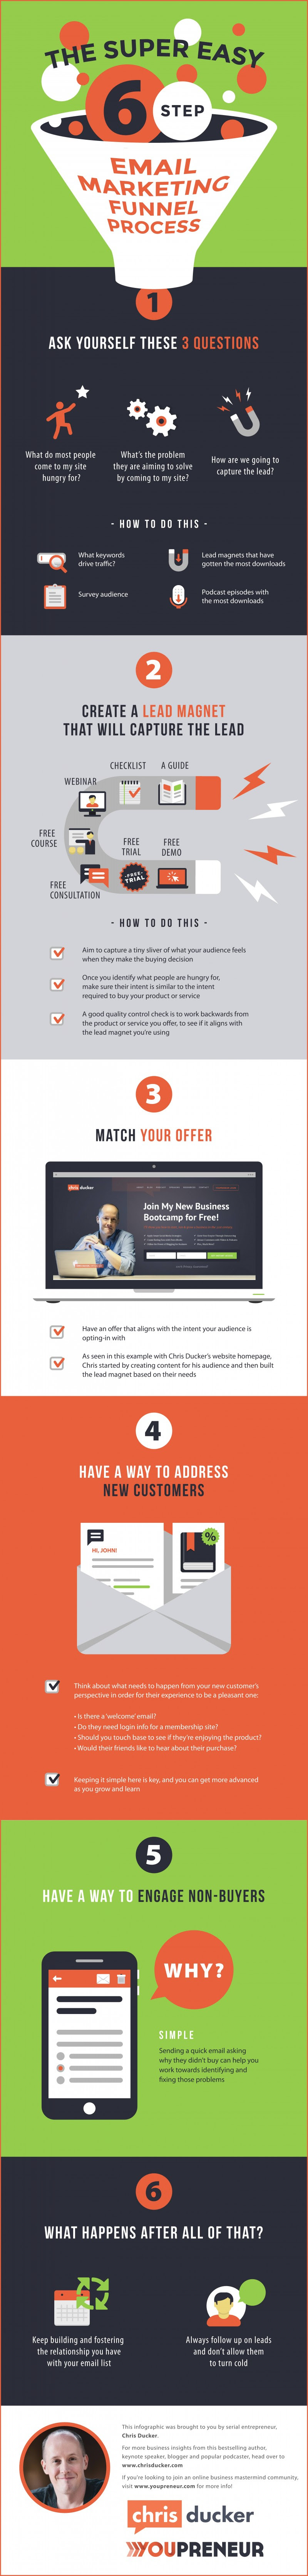 The Super Easy 6-Step Email Marketing Funnel